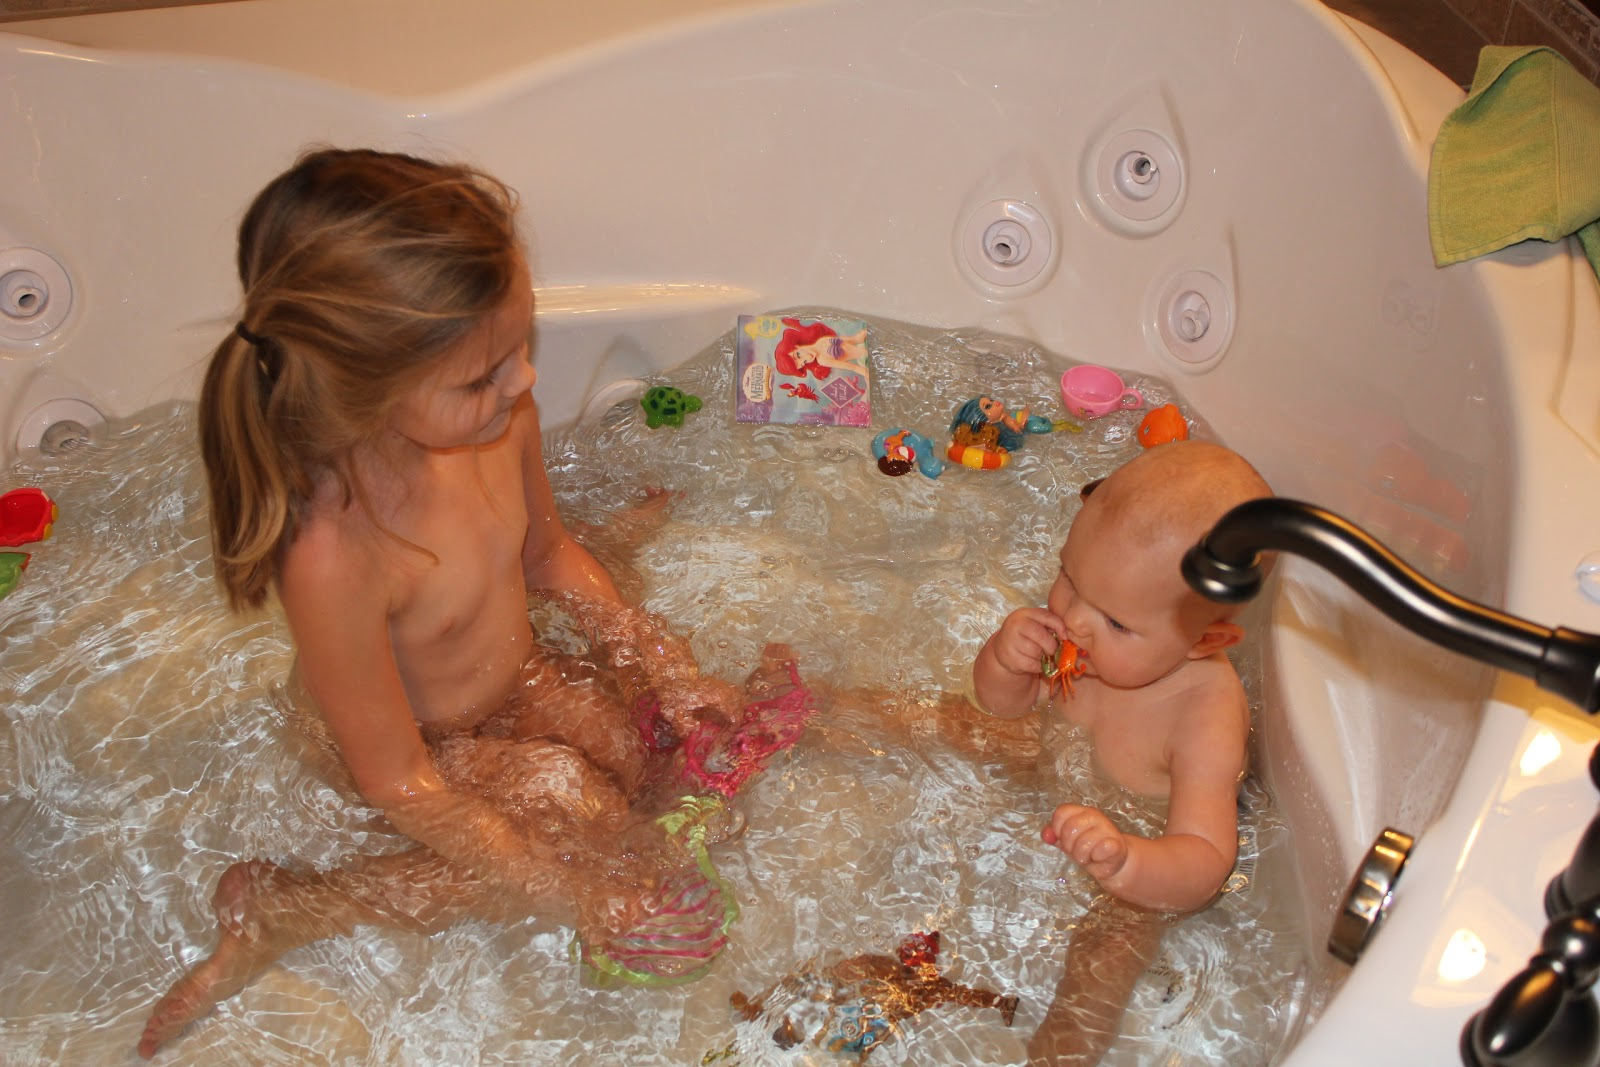 almost naked young girl by tub